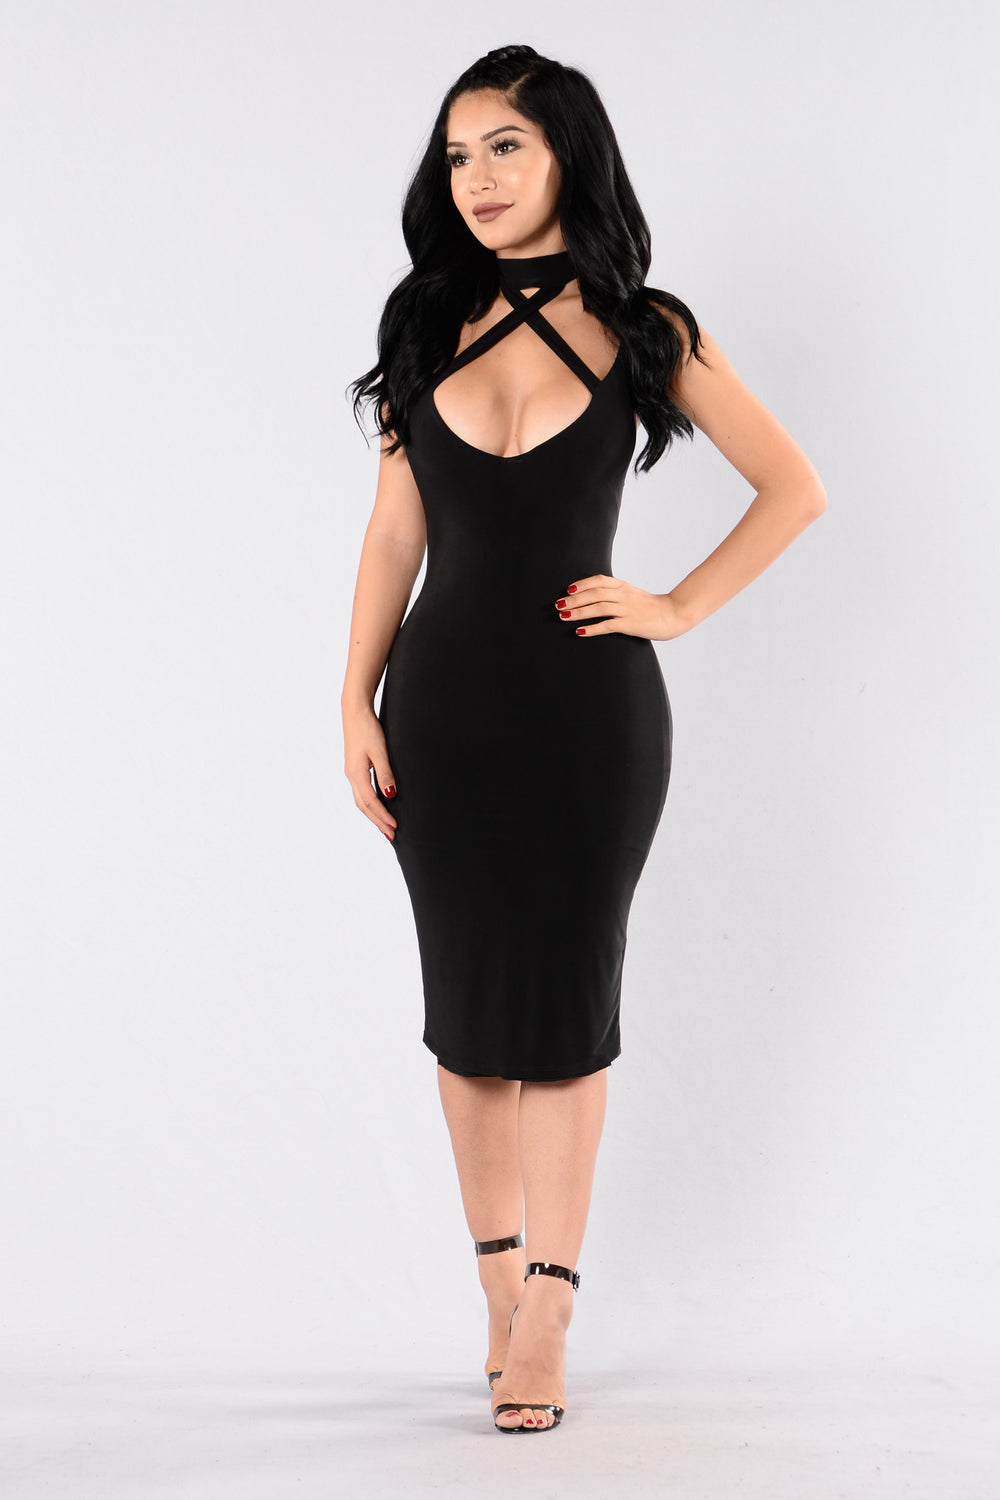 Lips Are Sealed Dress - Black